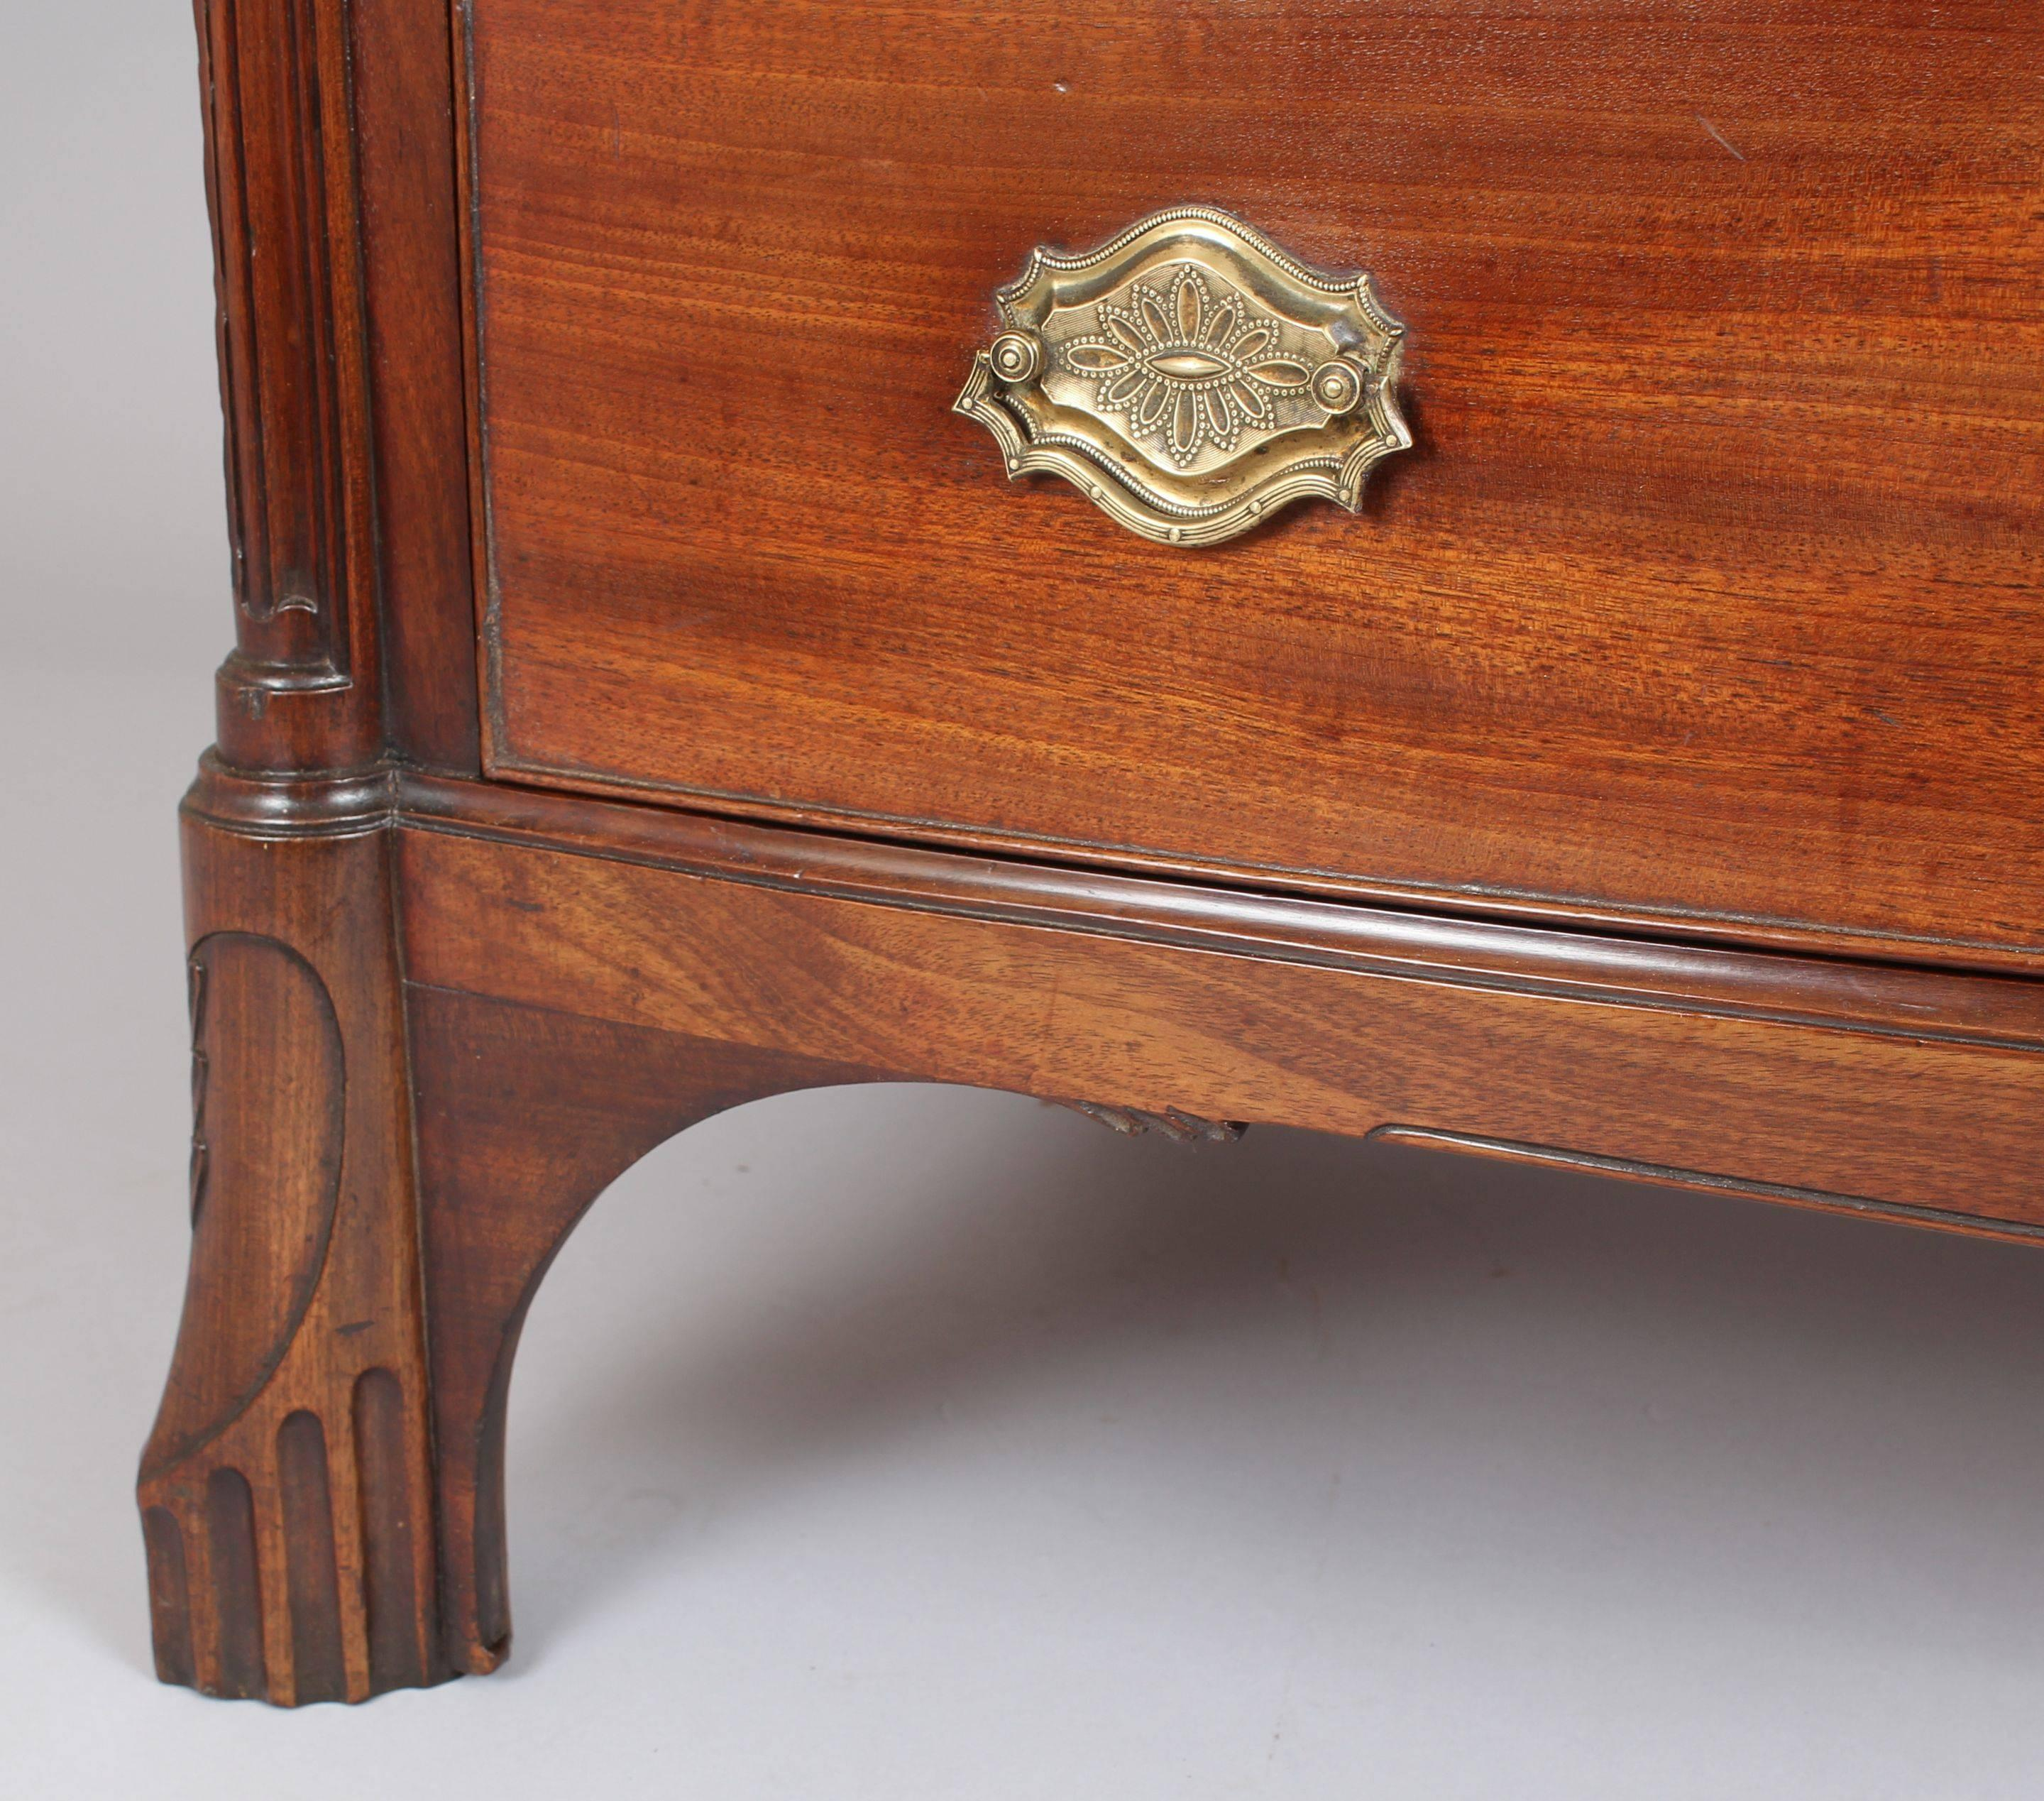 Mahogany Bow-Fronted Chest-of-Drawers of Channel Islands Origin